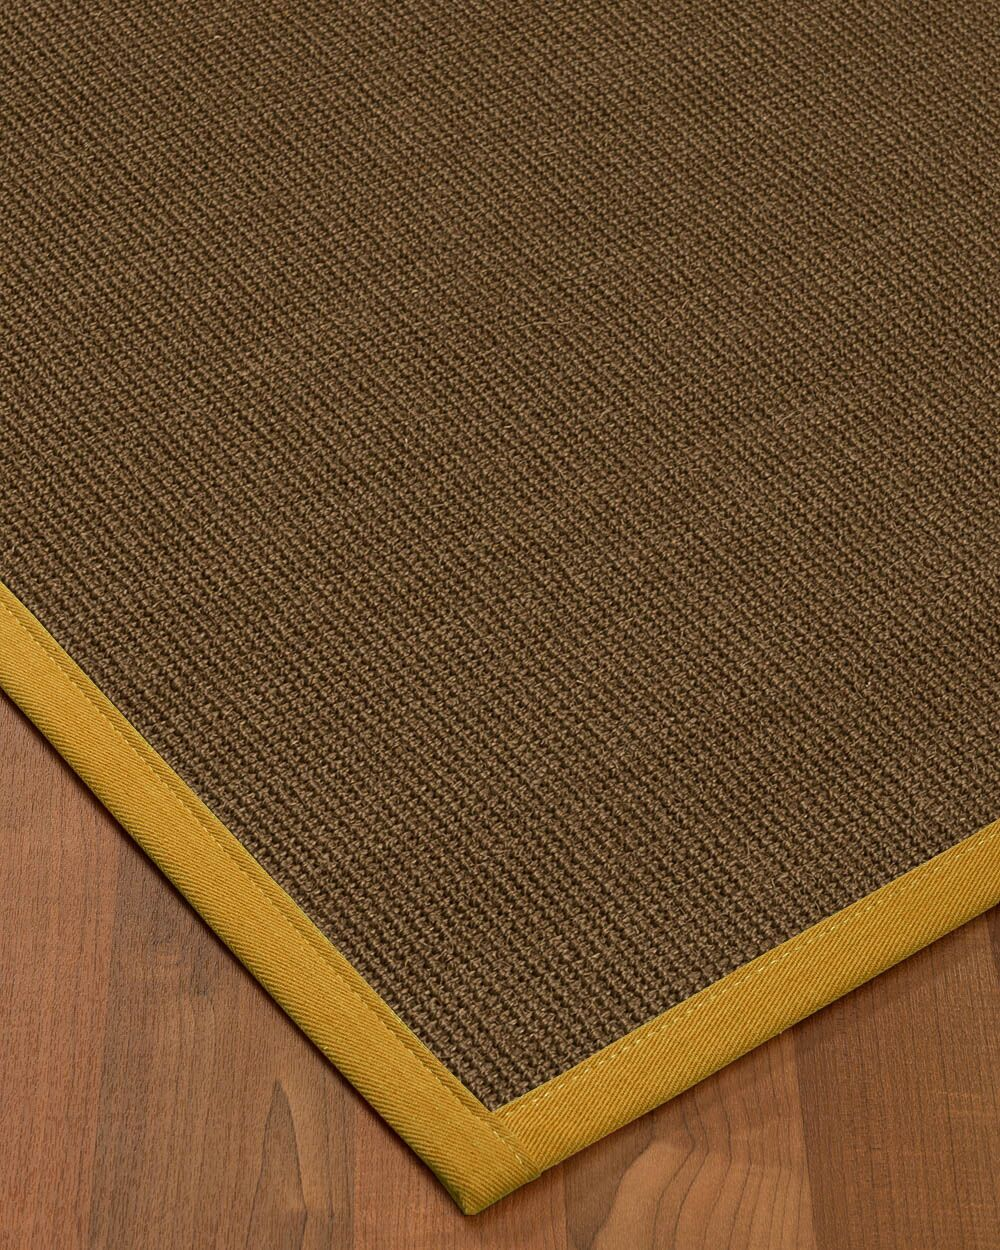 Kerner Border Hand-Woven Brown/Tan Area Rug Rug Pad Included: No, Rug Size: Runner 2'6